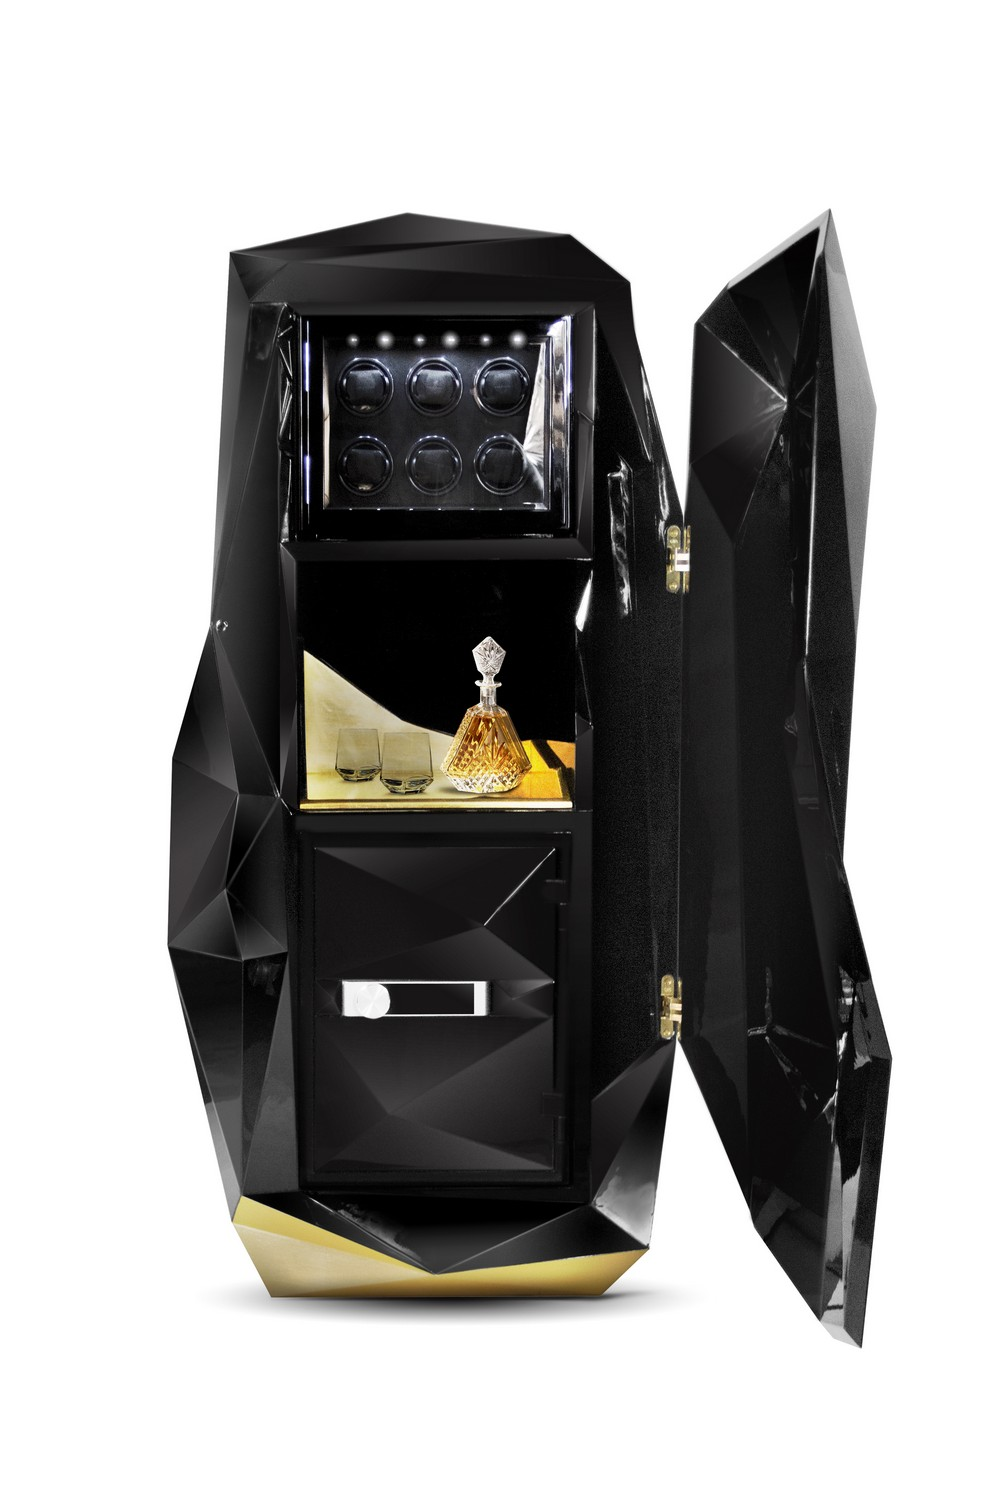 Most Expensive Wines Most Expensive Wines: Skyfall Gran Reserva Sparkling Wine diamond safe box HR 02 C  pia